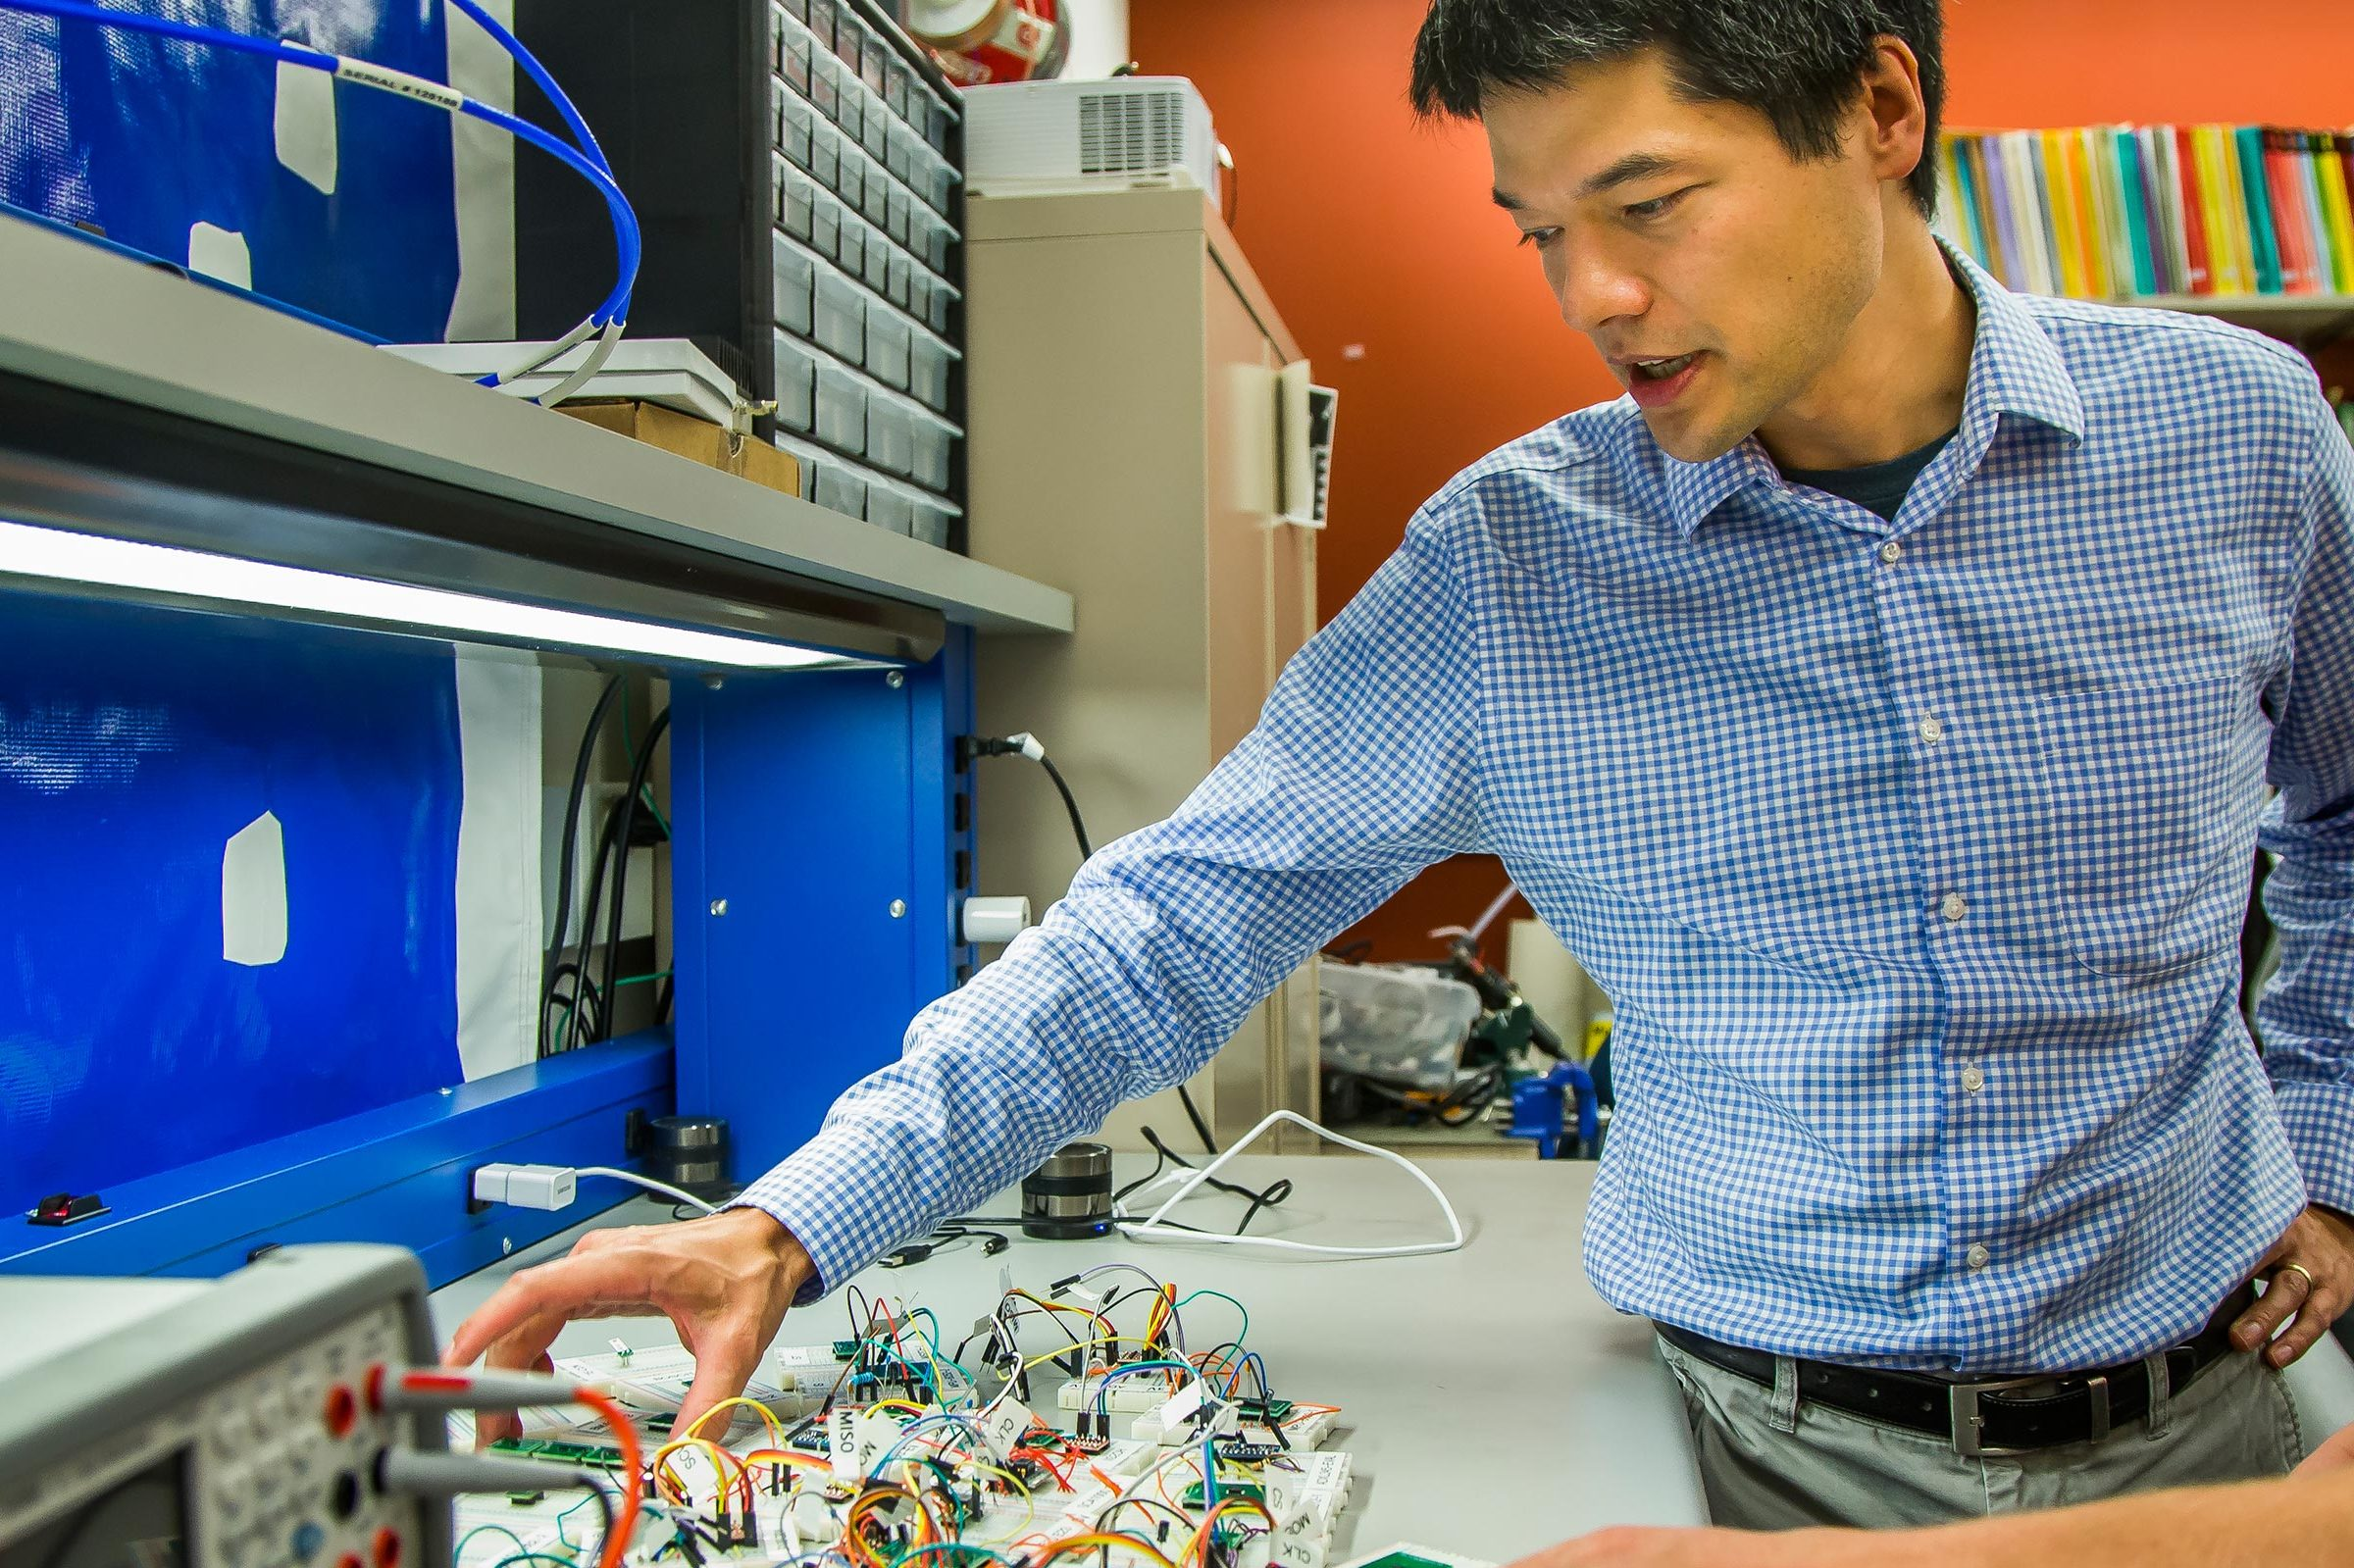 Scientist examines an accelerometer sensor